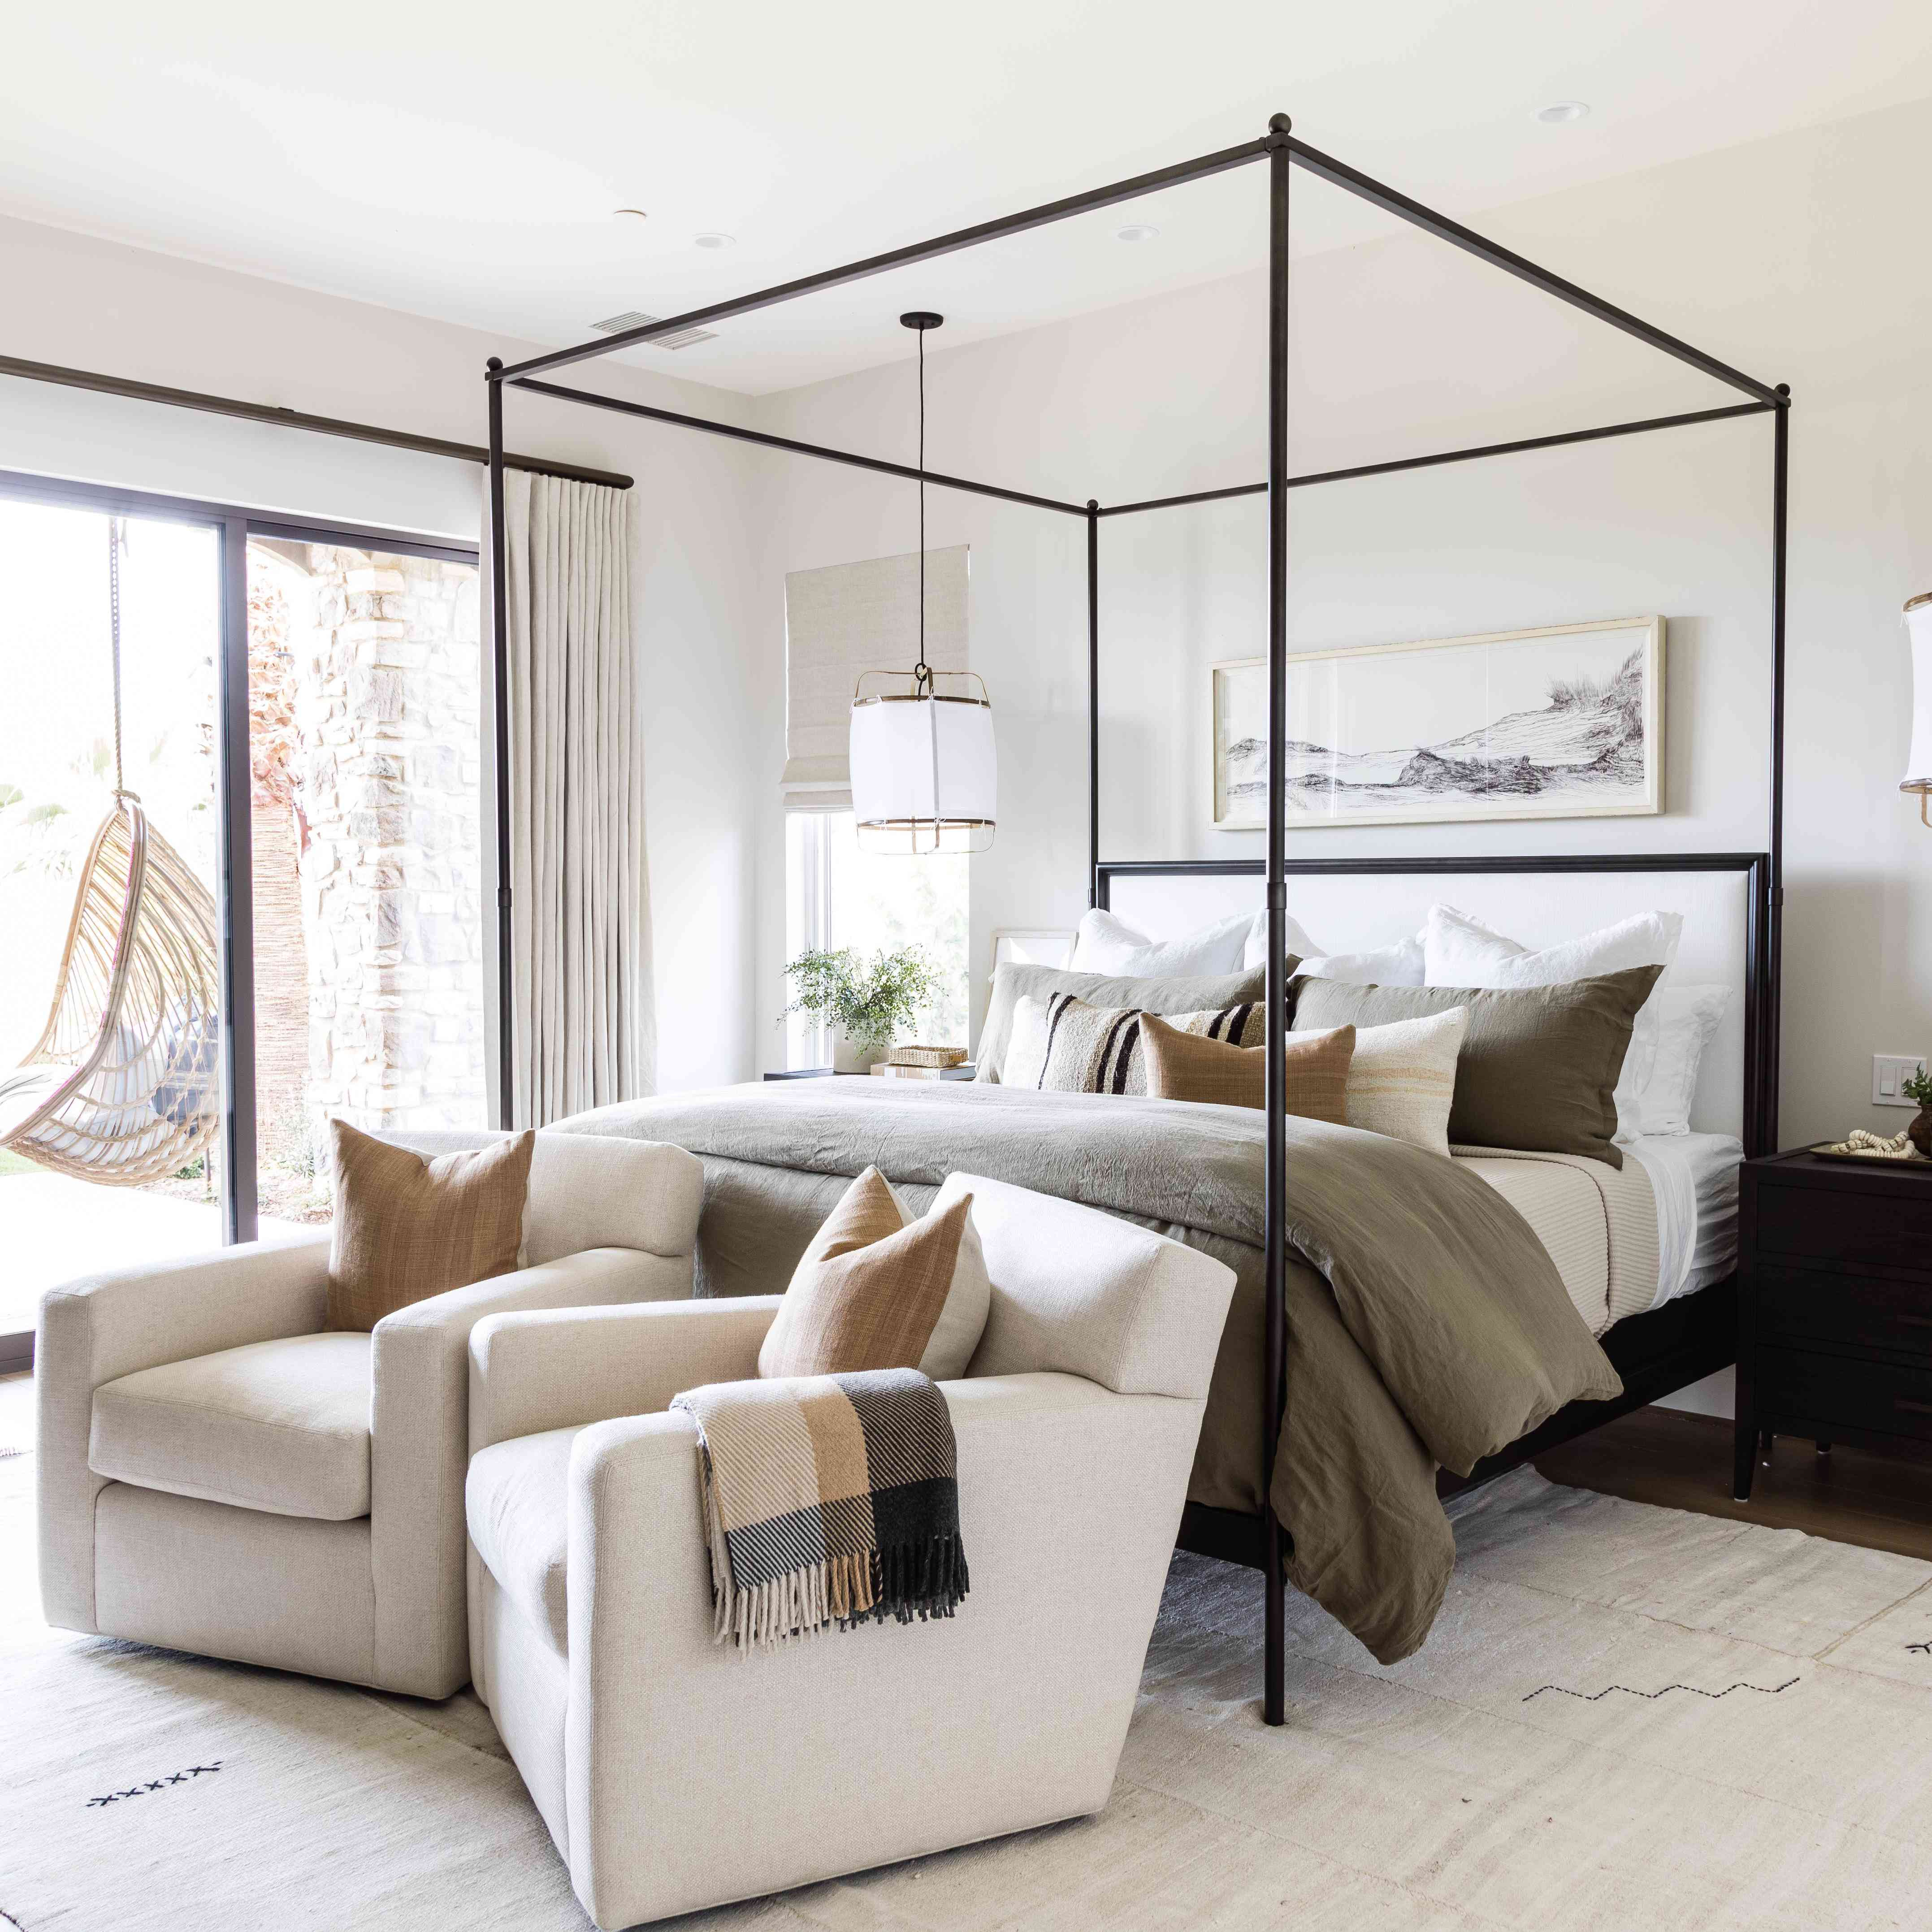 11 Designer-Approved Bedroom Layouts That Never Fail